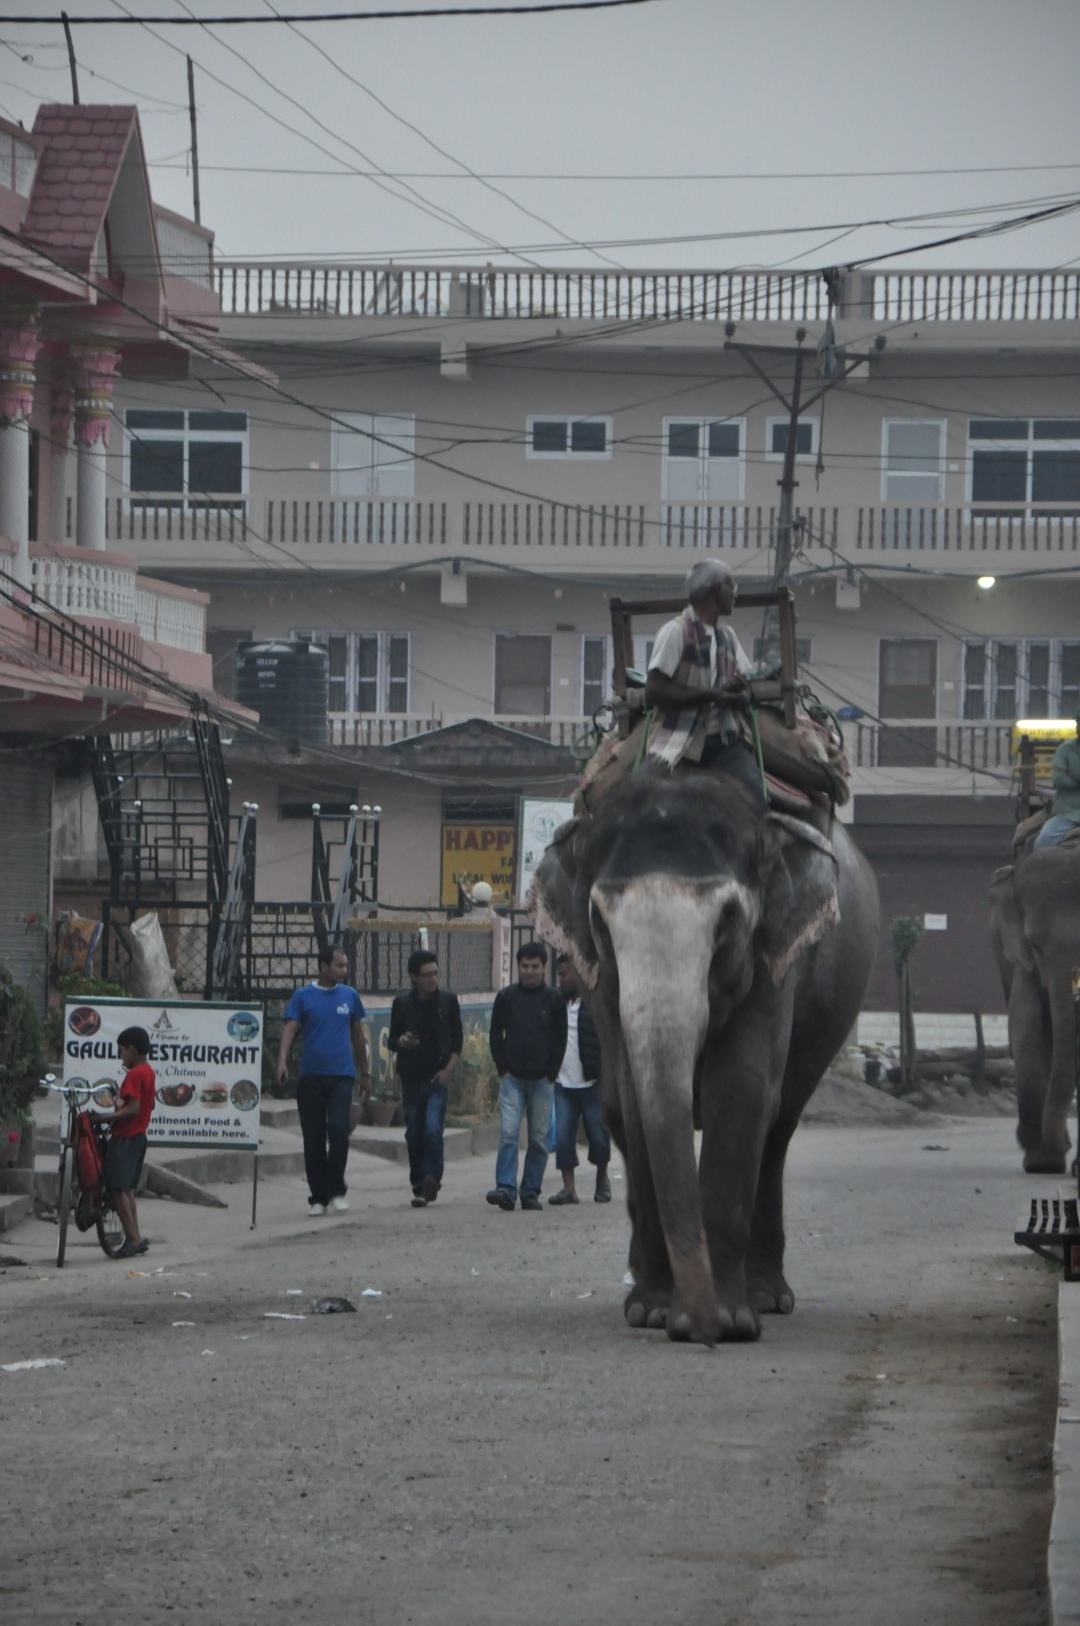 An old elephant in the early morning